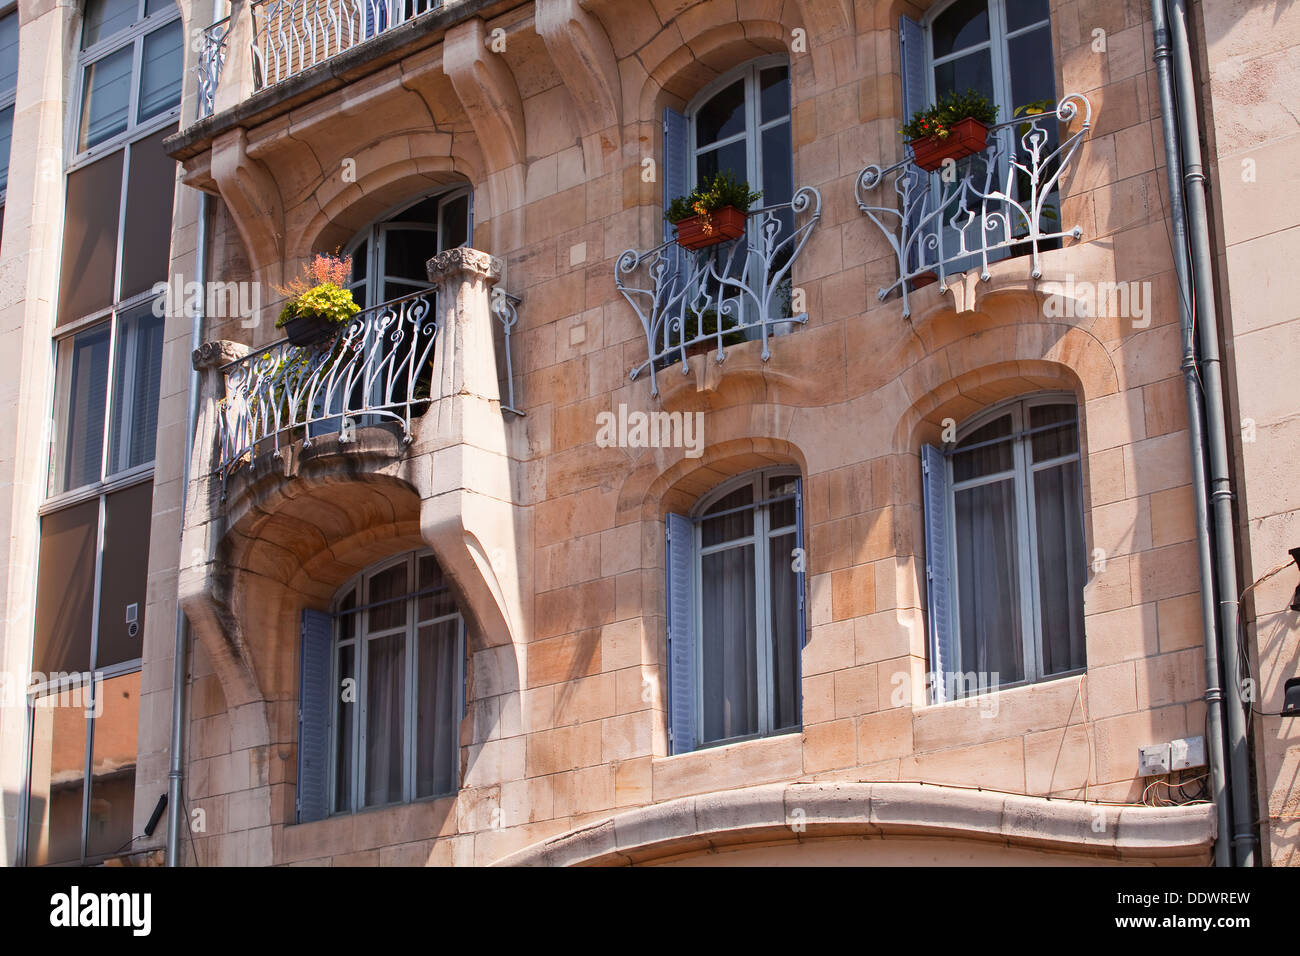 art nouveau architecture on the camal building in nancy france stock photo royalty free image. Black Bedroom Furniture Sets. Home Design Ideas